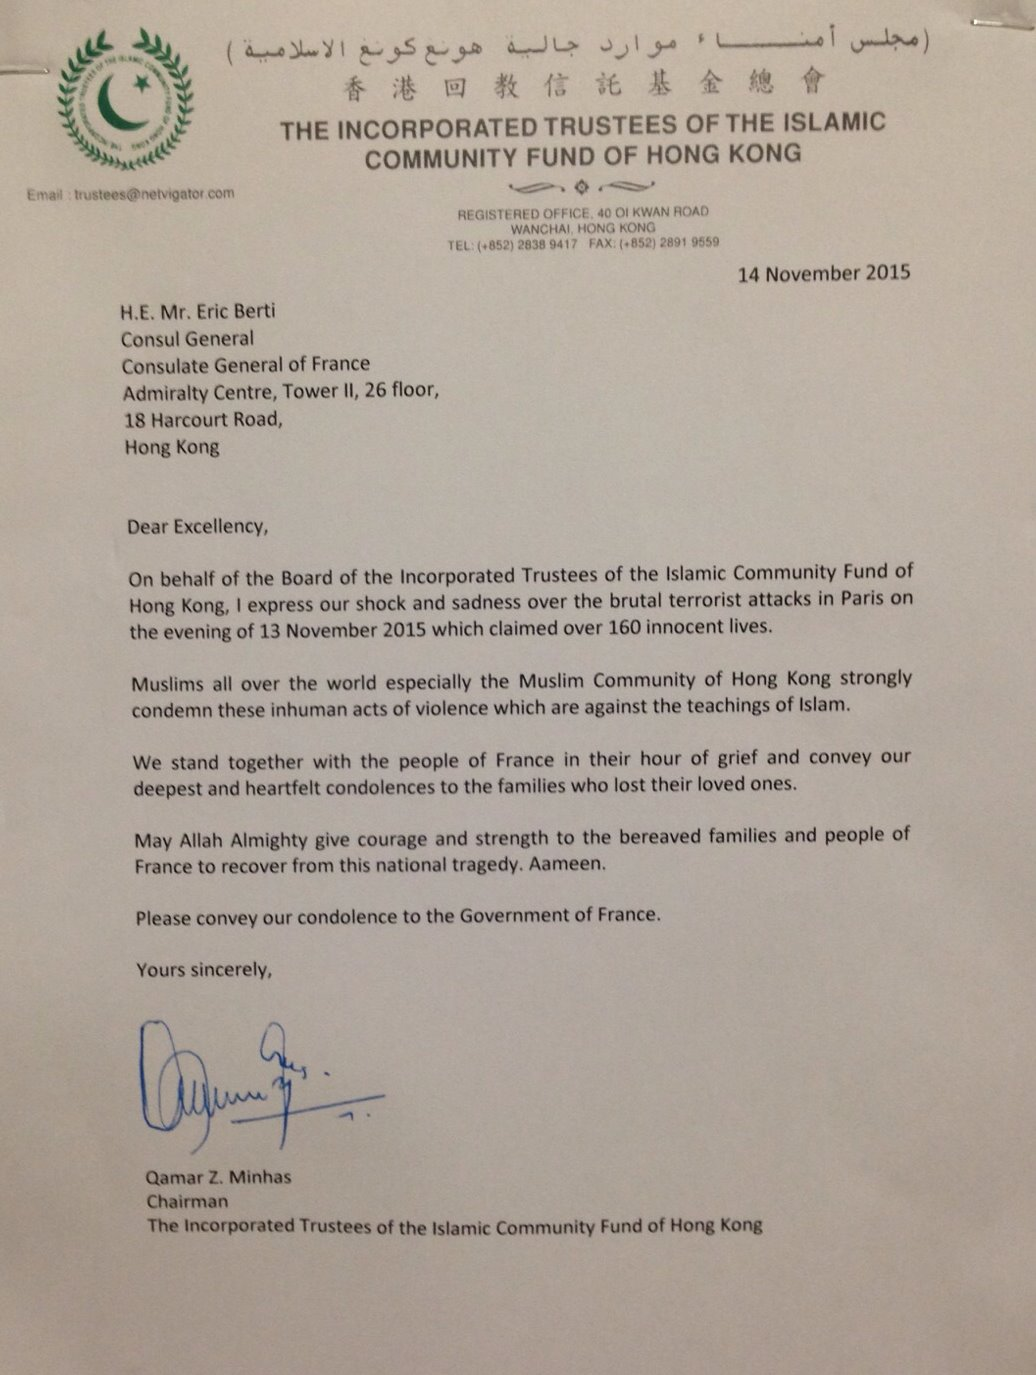 Letter Of Condolence To Consulate General Of France In Hk Local Activities Light Of Islam